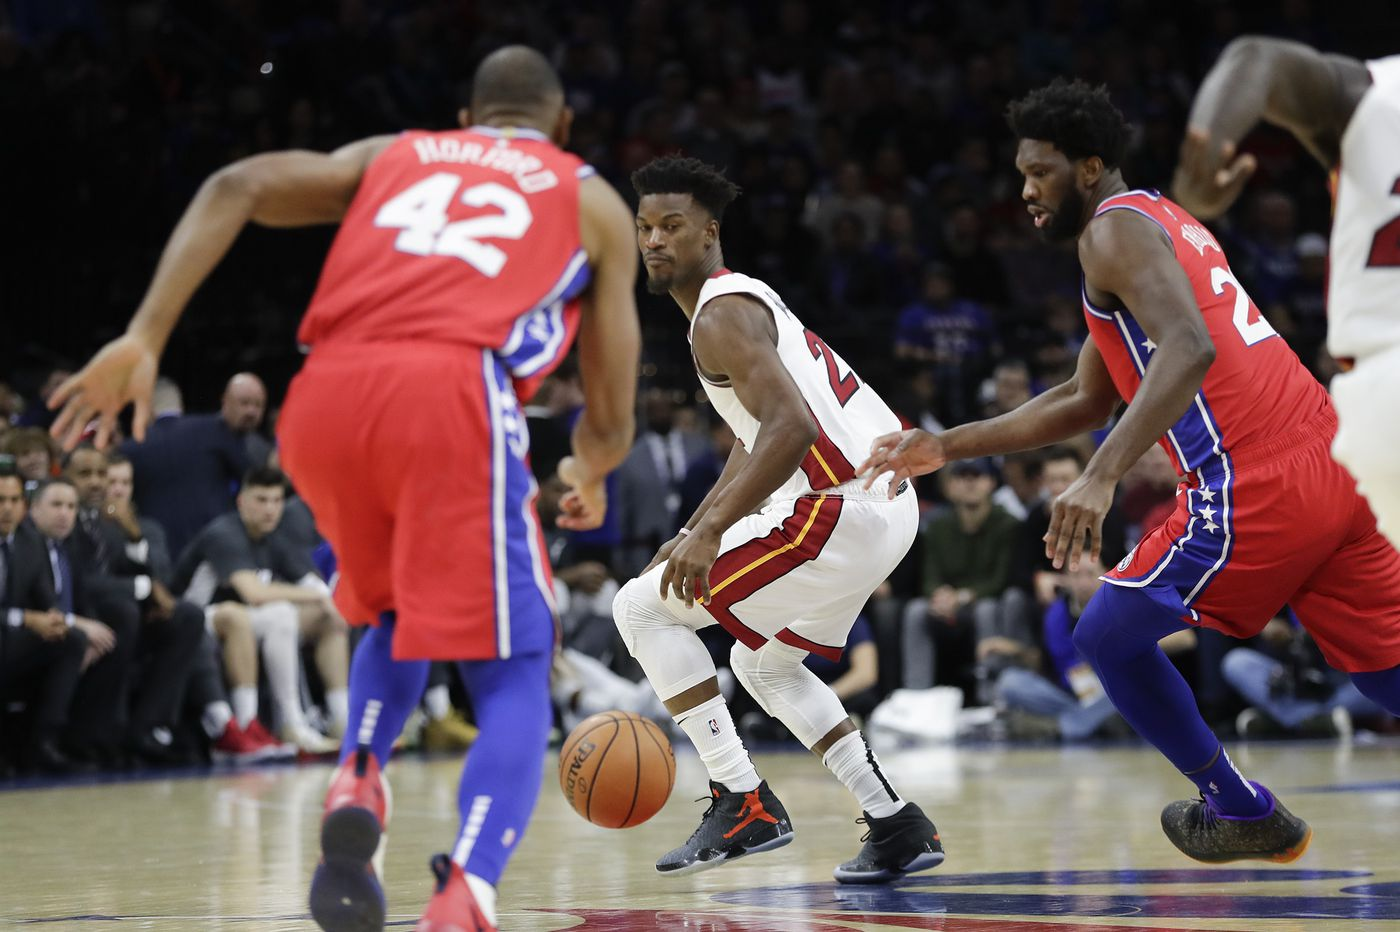 In Jimmy Butler's return to Philadelphia, the Sixers made an emphatic case that they are better off without him | David Murphy